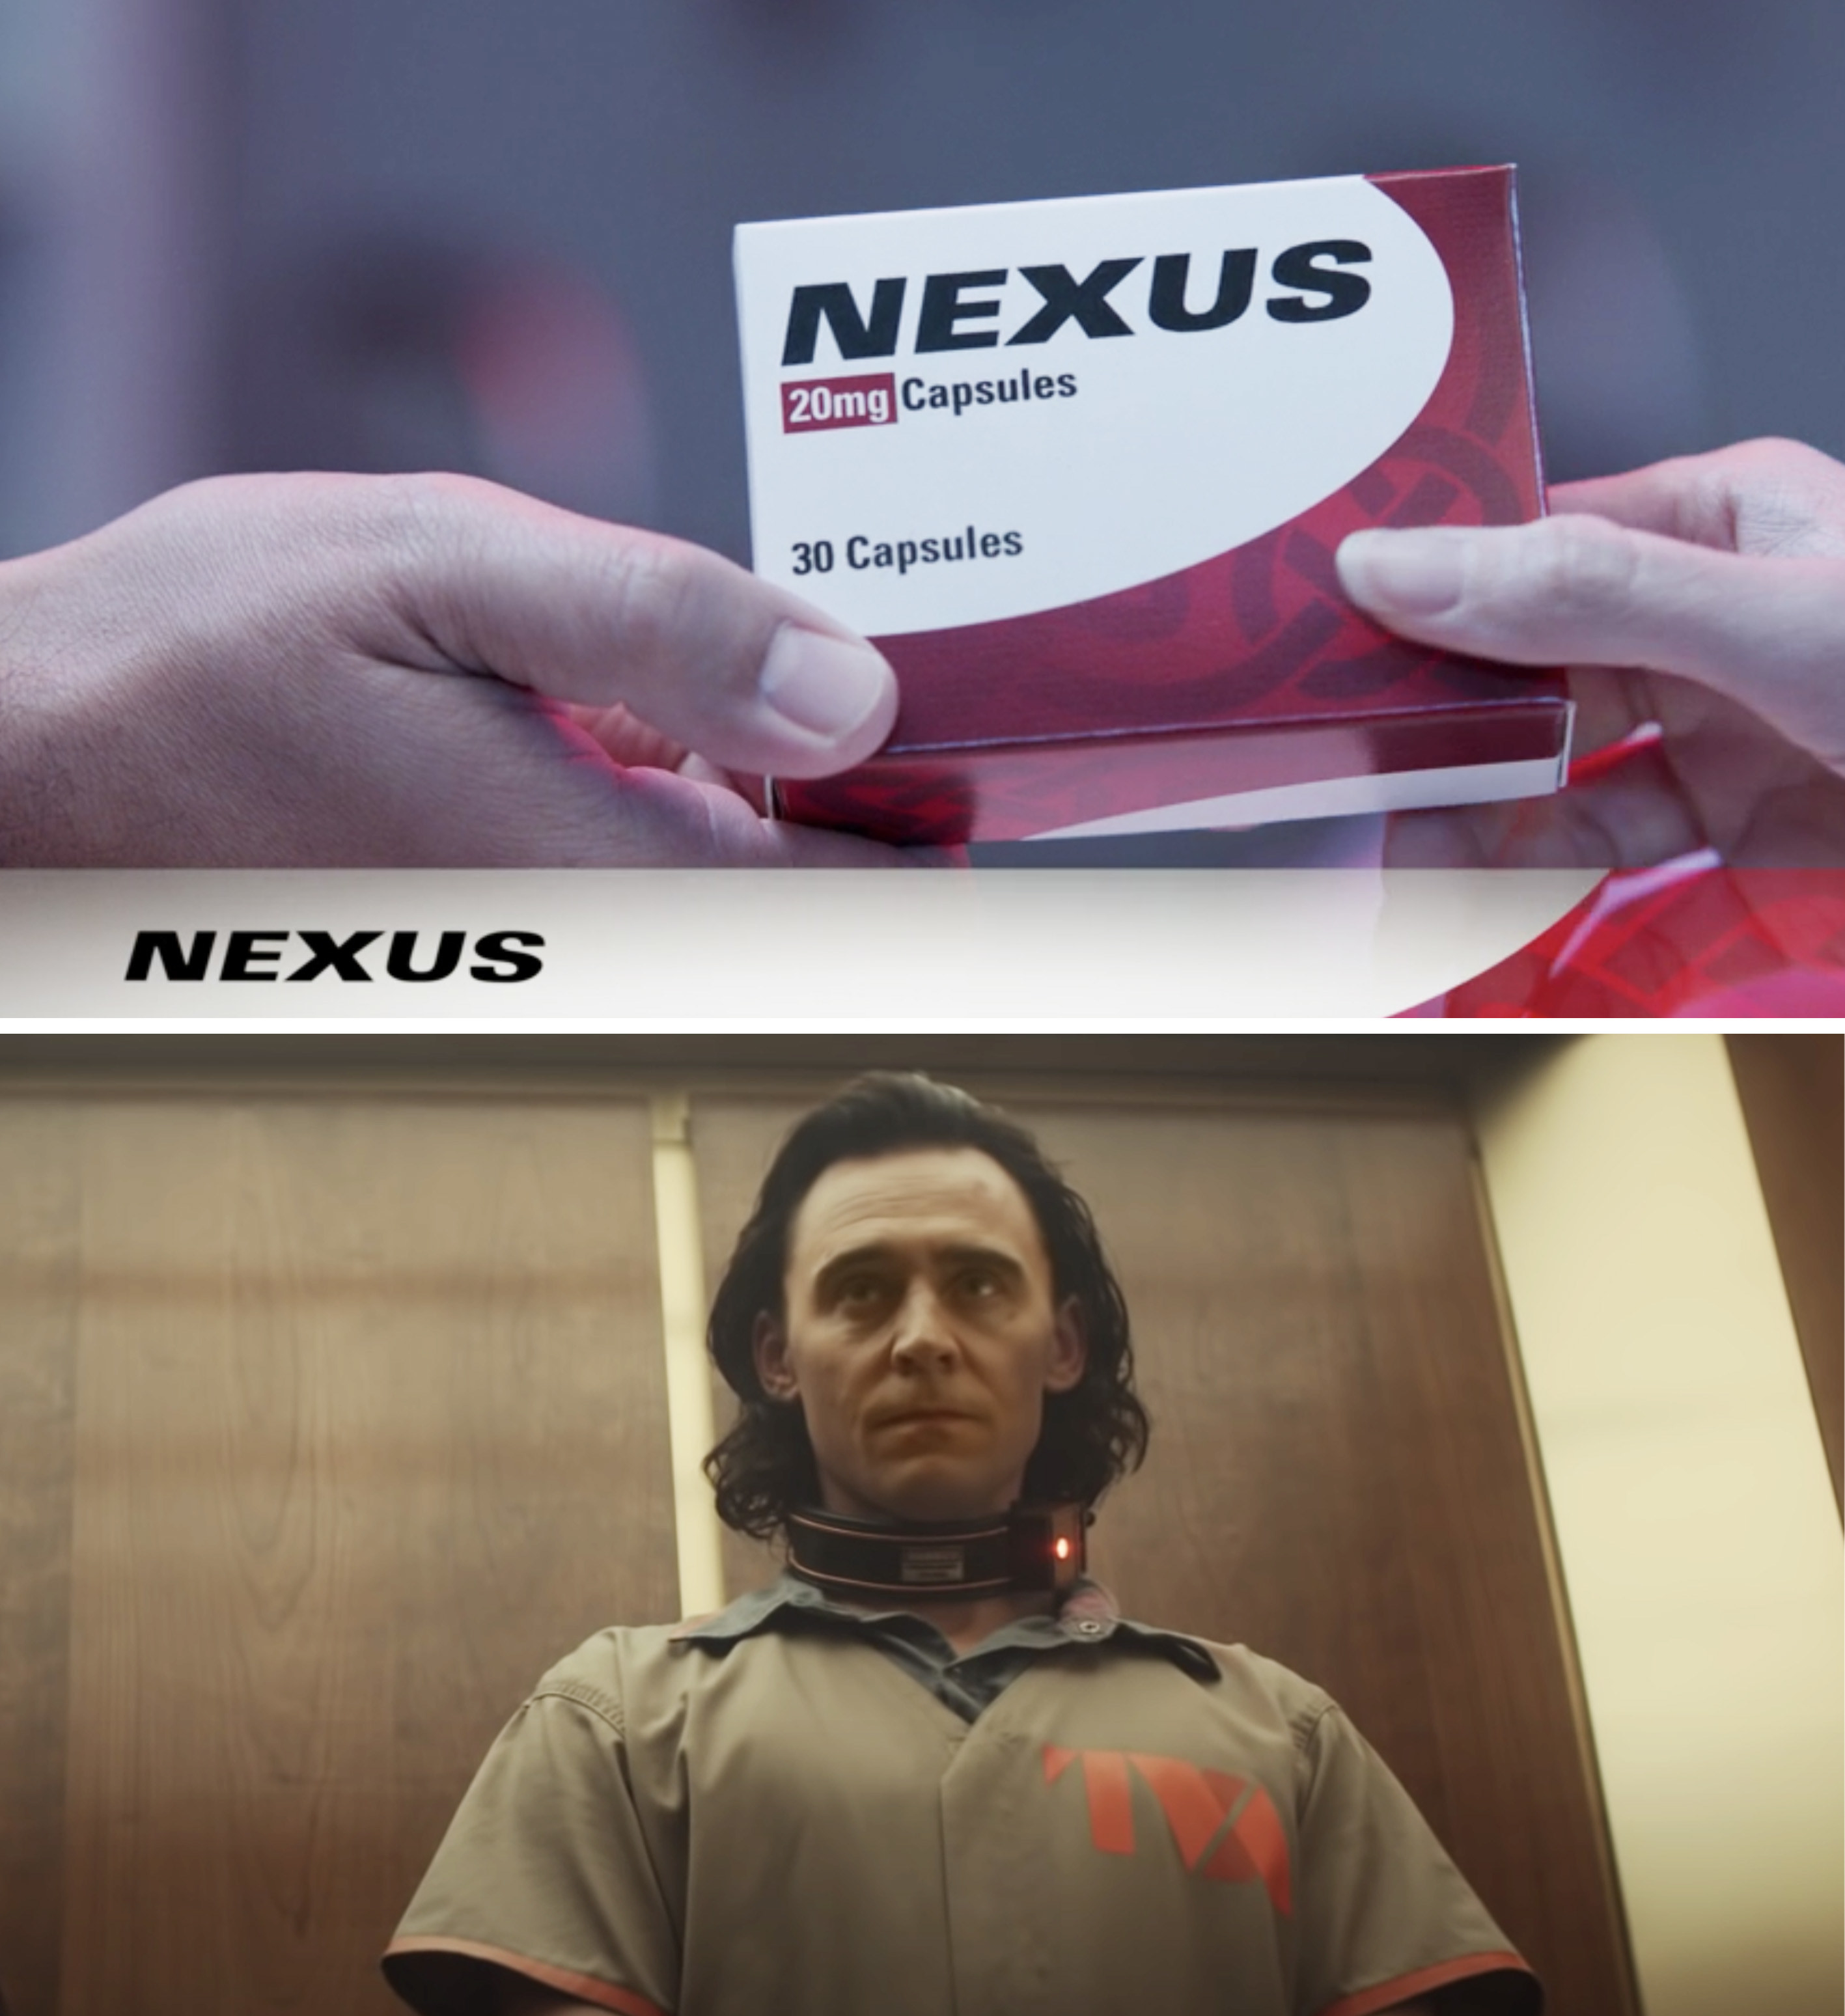 A box of Nexus capsules vs. Loki in a TVA jumpsuit